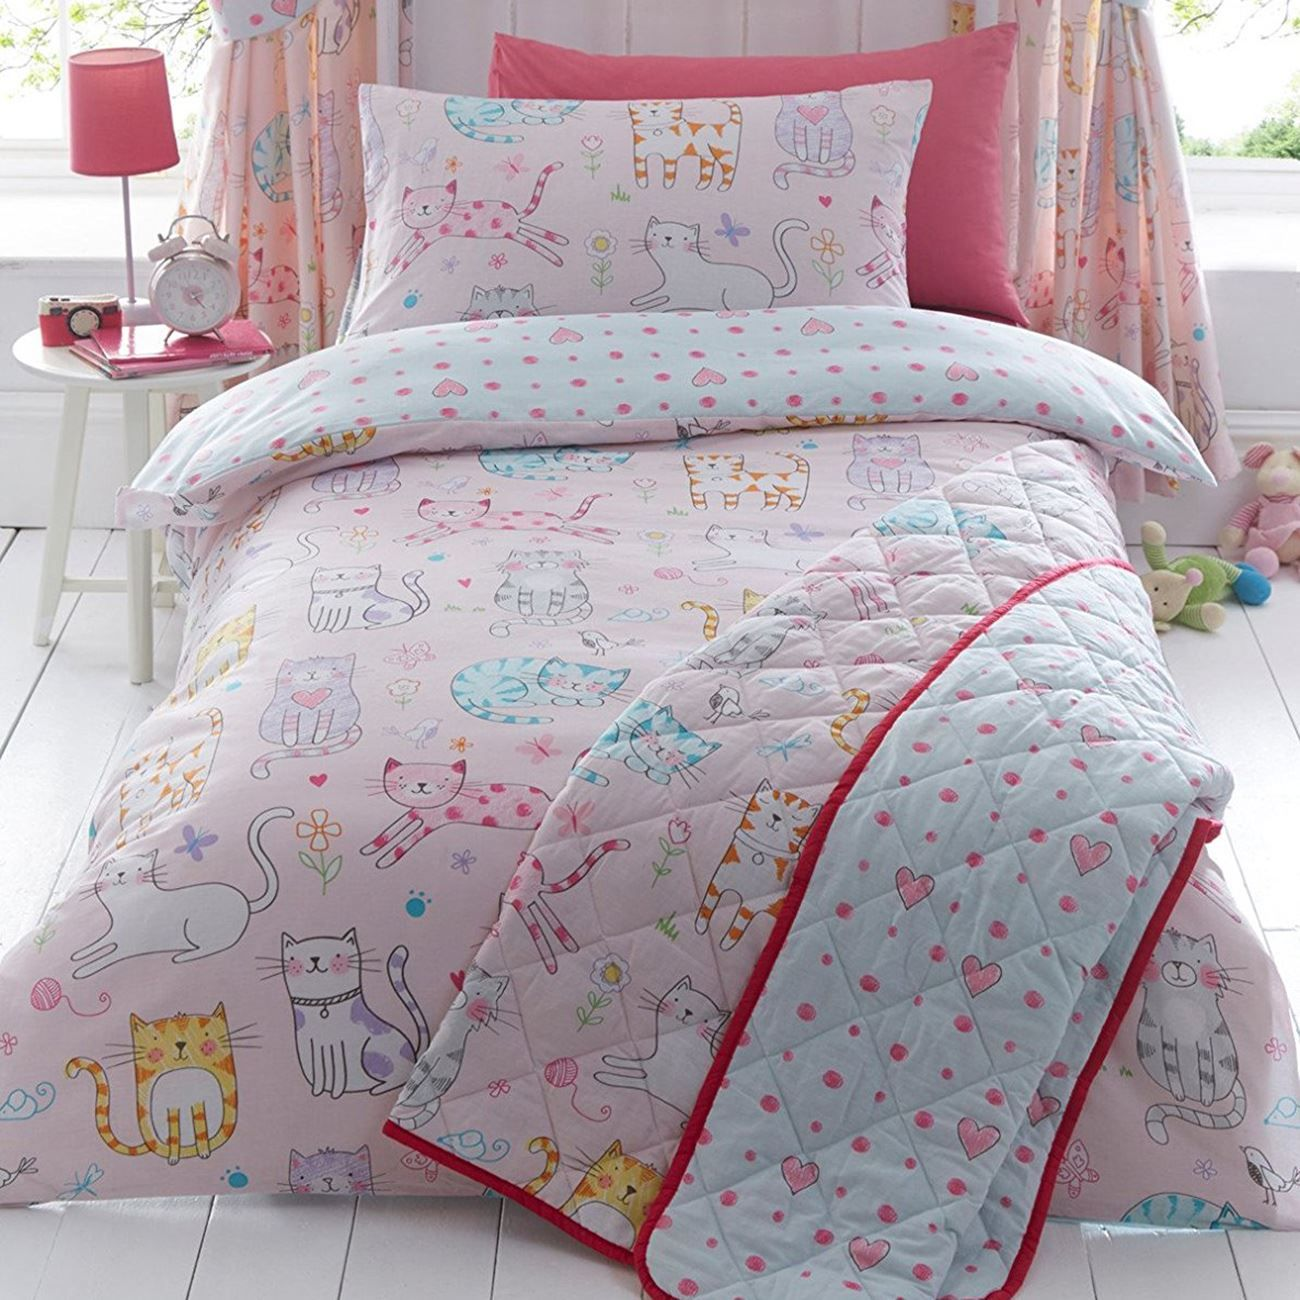 Girls Single Duvet Cover Sets Bedding Unicorn Flower Horse Heart